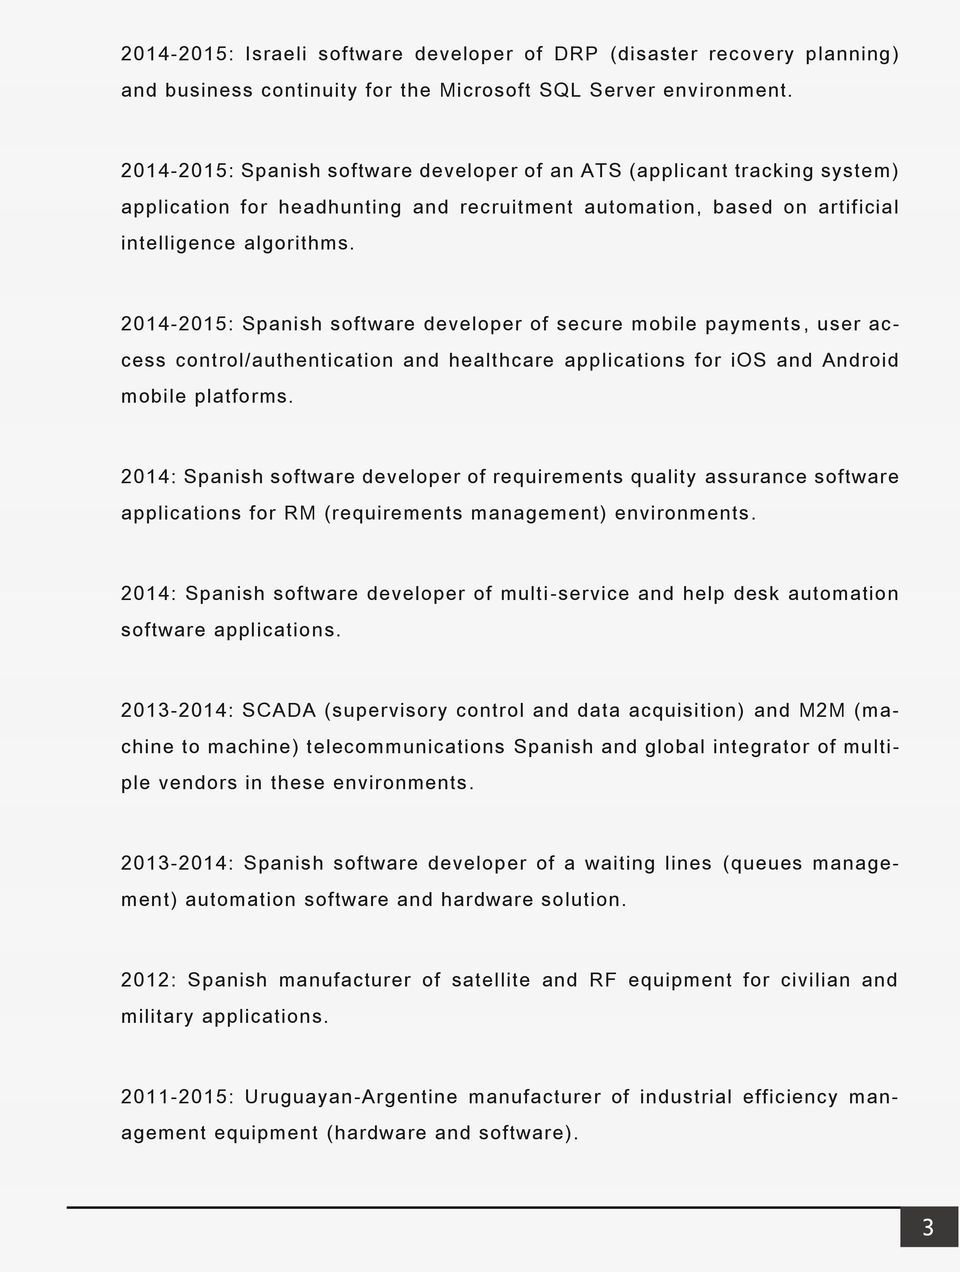 2014-2015: Spanish software developer of secure mobile payments, user access control/authentication and healthcare applications for ios and Android mobile platforms.